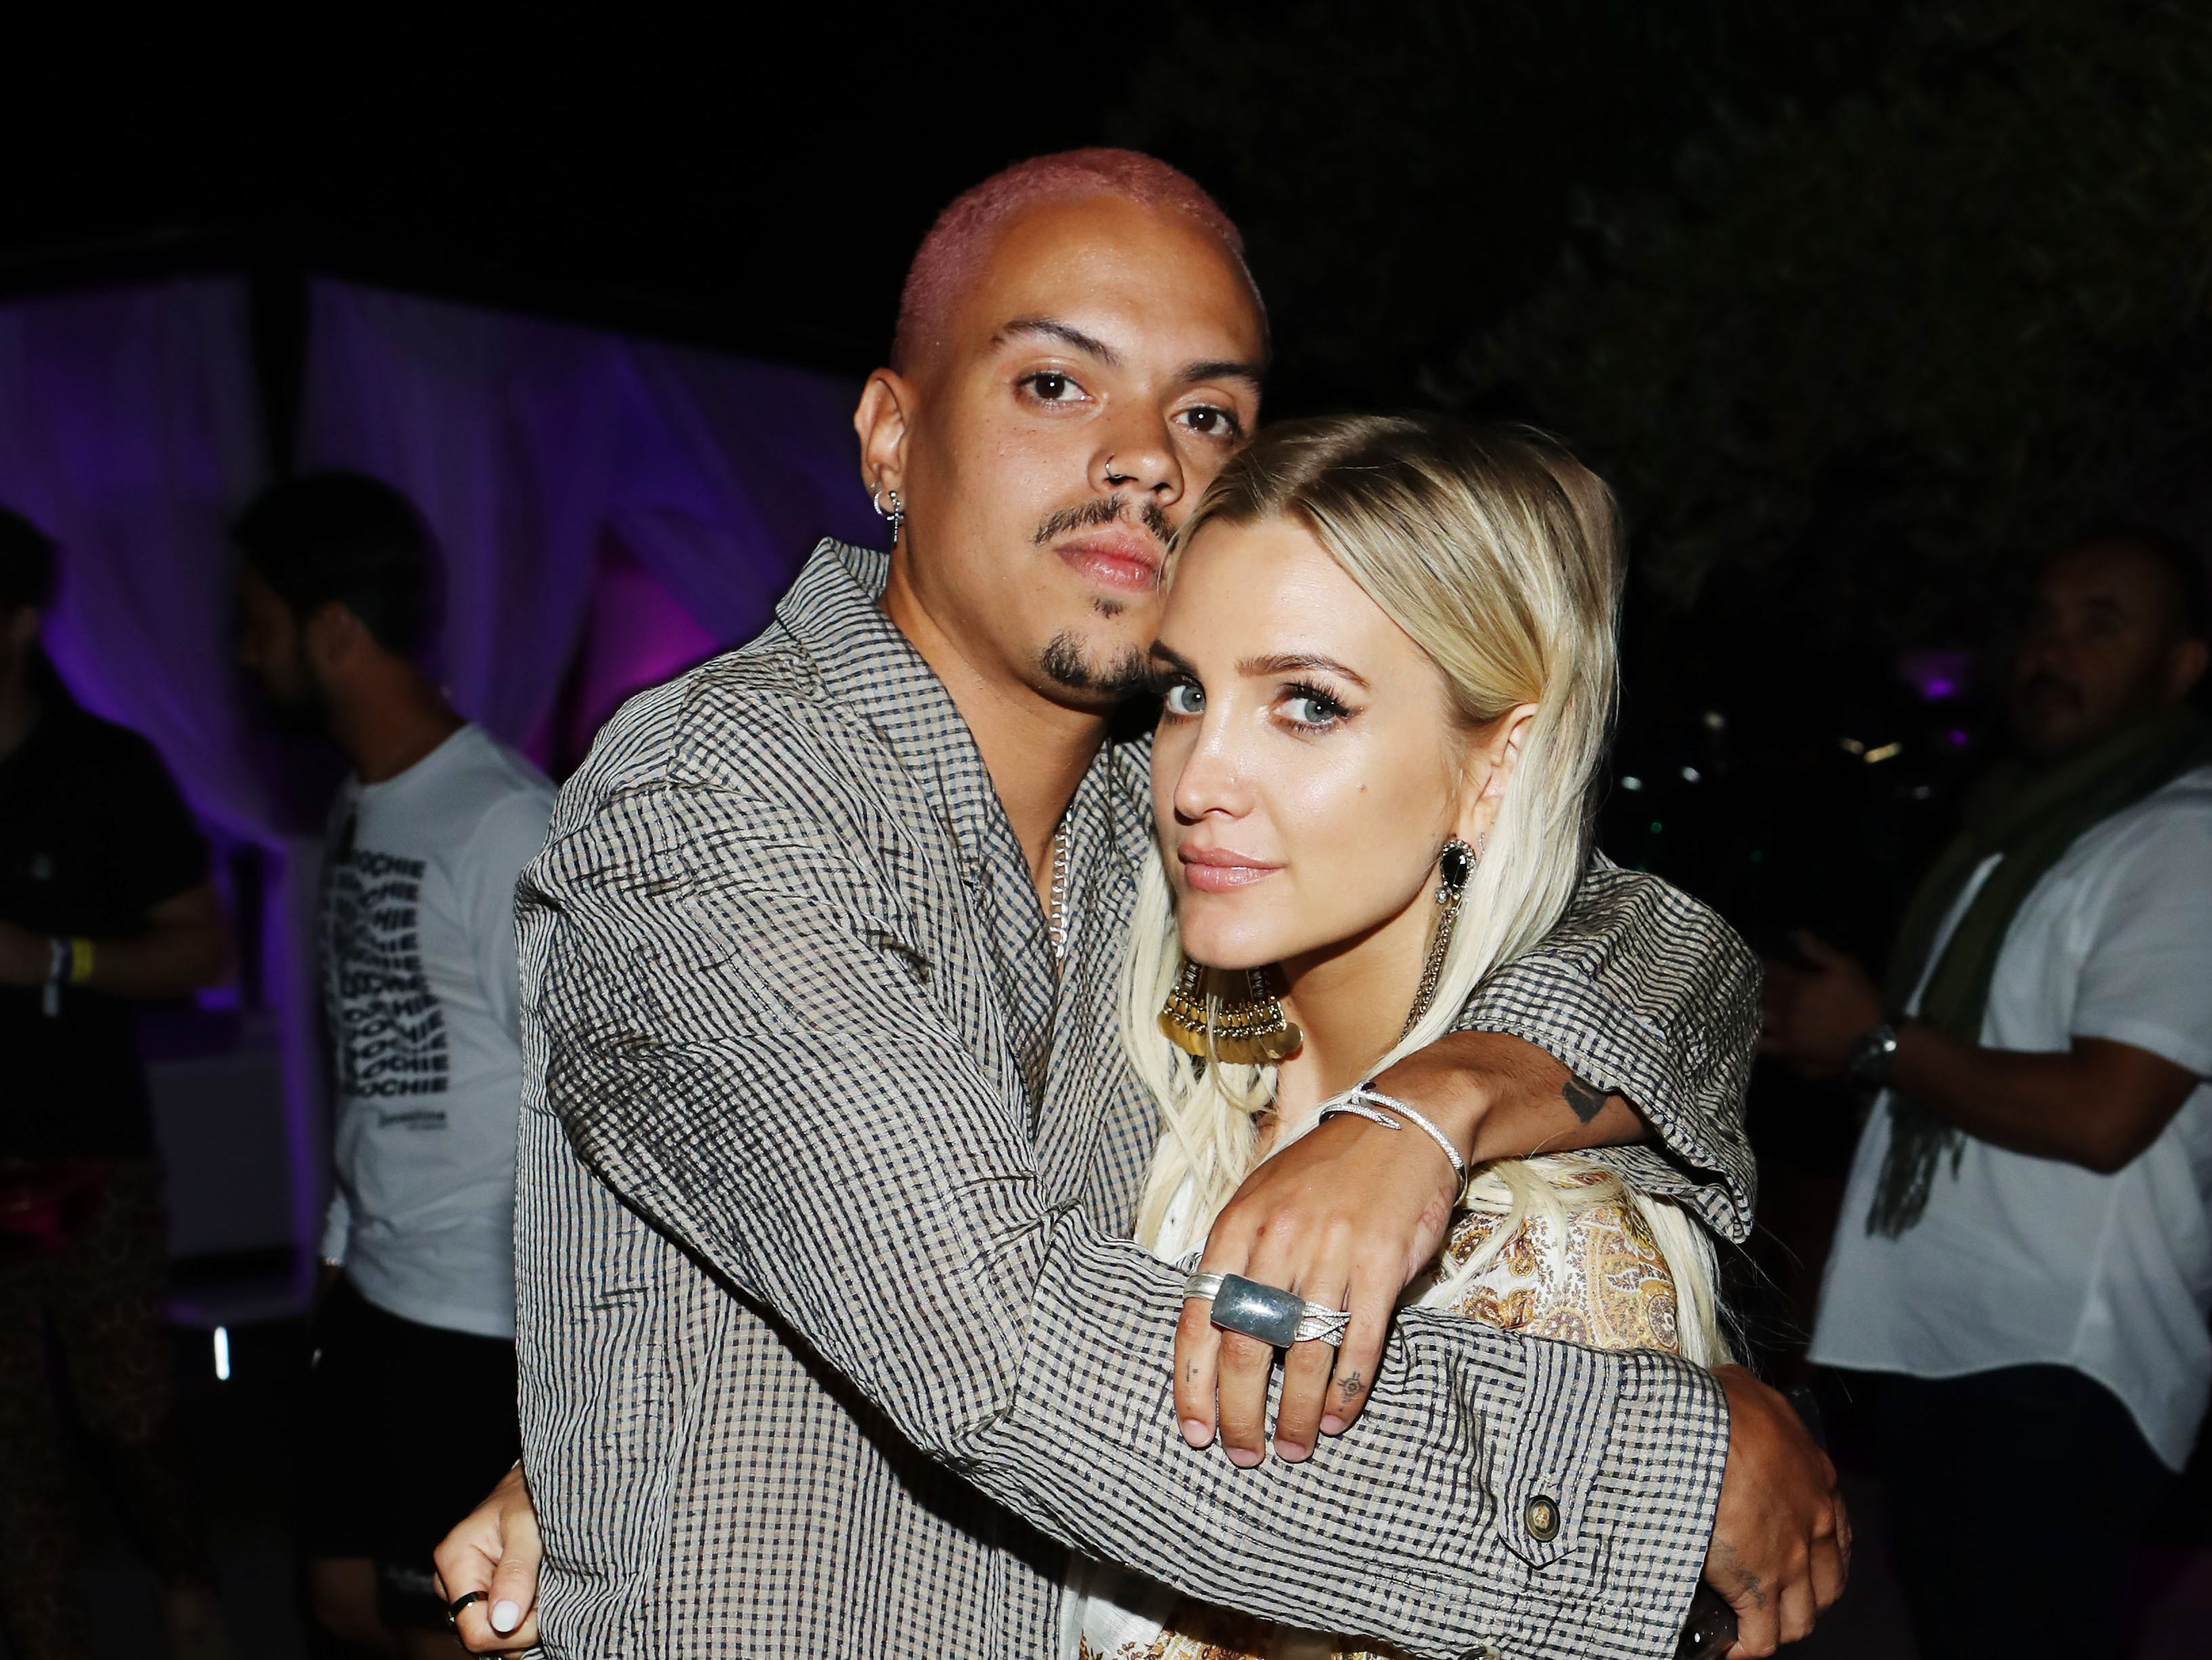 BERMUDA DUNES, CALIFORNIA - APRIL 12: Evan Ross (L) and Ashlee Simpson attend NYLON's Midnight Garden Party At Coachella Presented By Ketel One Botanical on April 12, 2019 in Bermuda Dunes, California. (Photo by Rich Polk/Getty Images for Ketel One Botanical ) ORG XMIT: 775324403 ORIG FILE ID: 1142356033